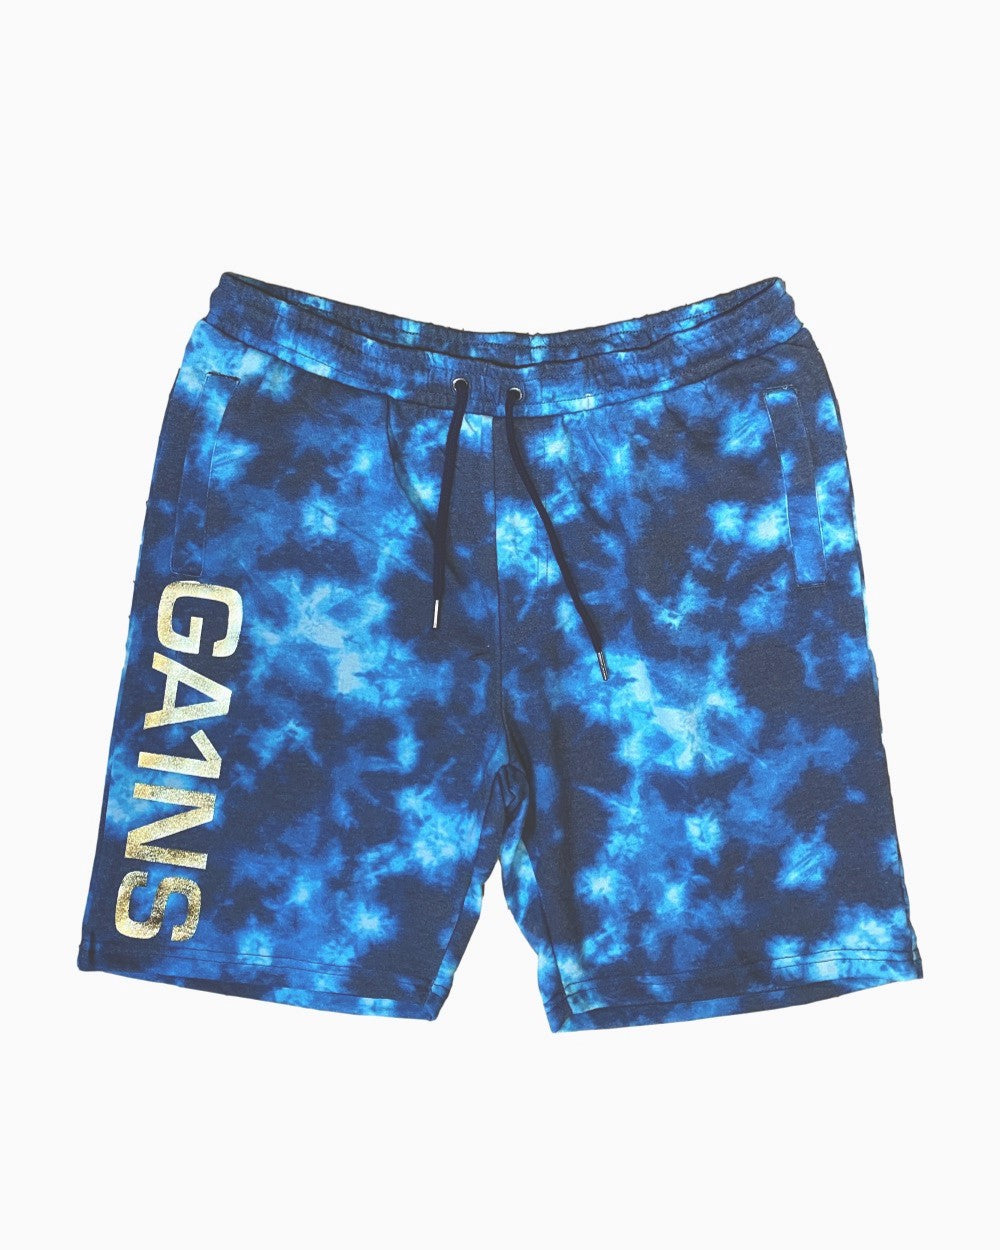 Men's Aqua Tie Dye French Terry Short